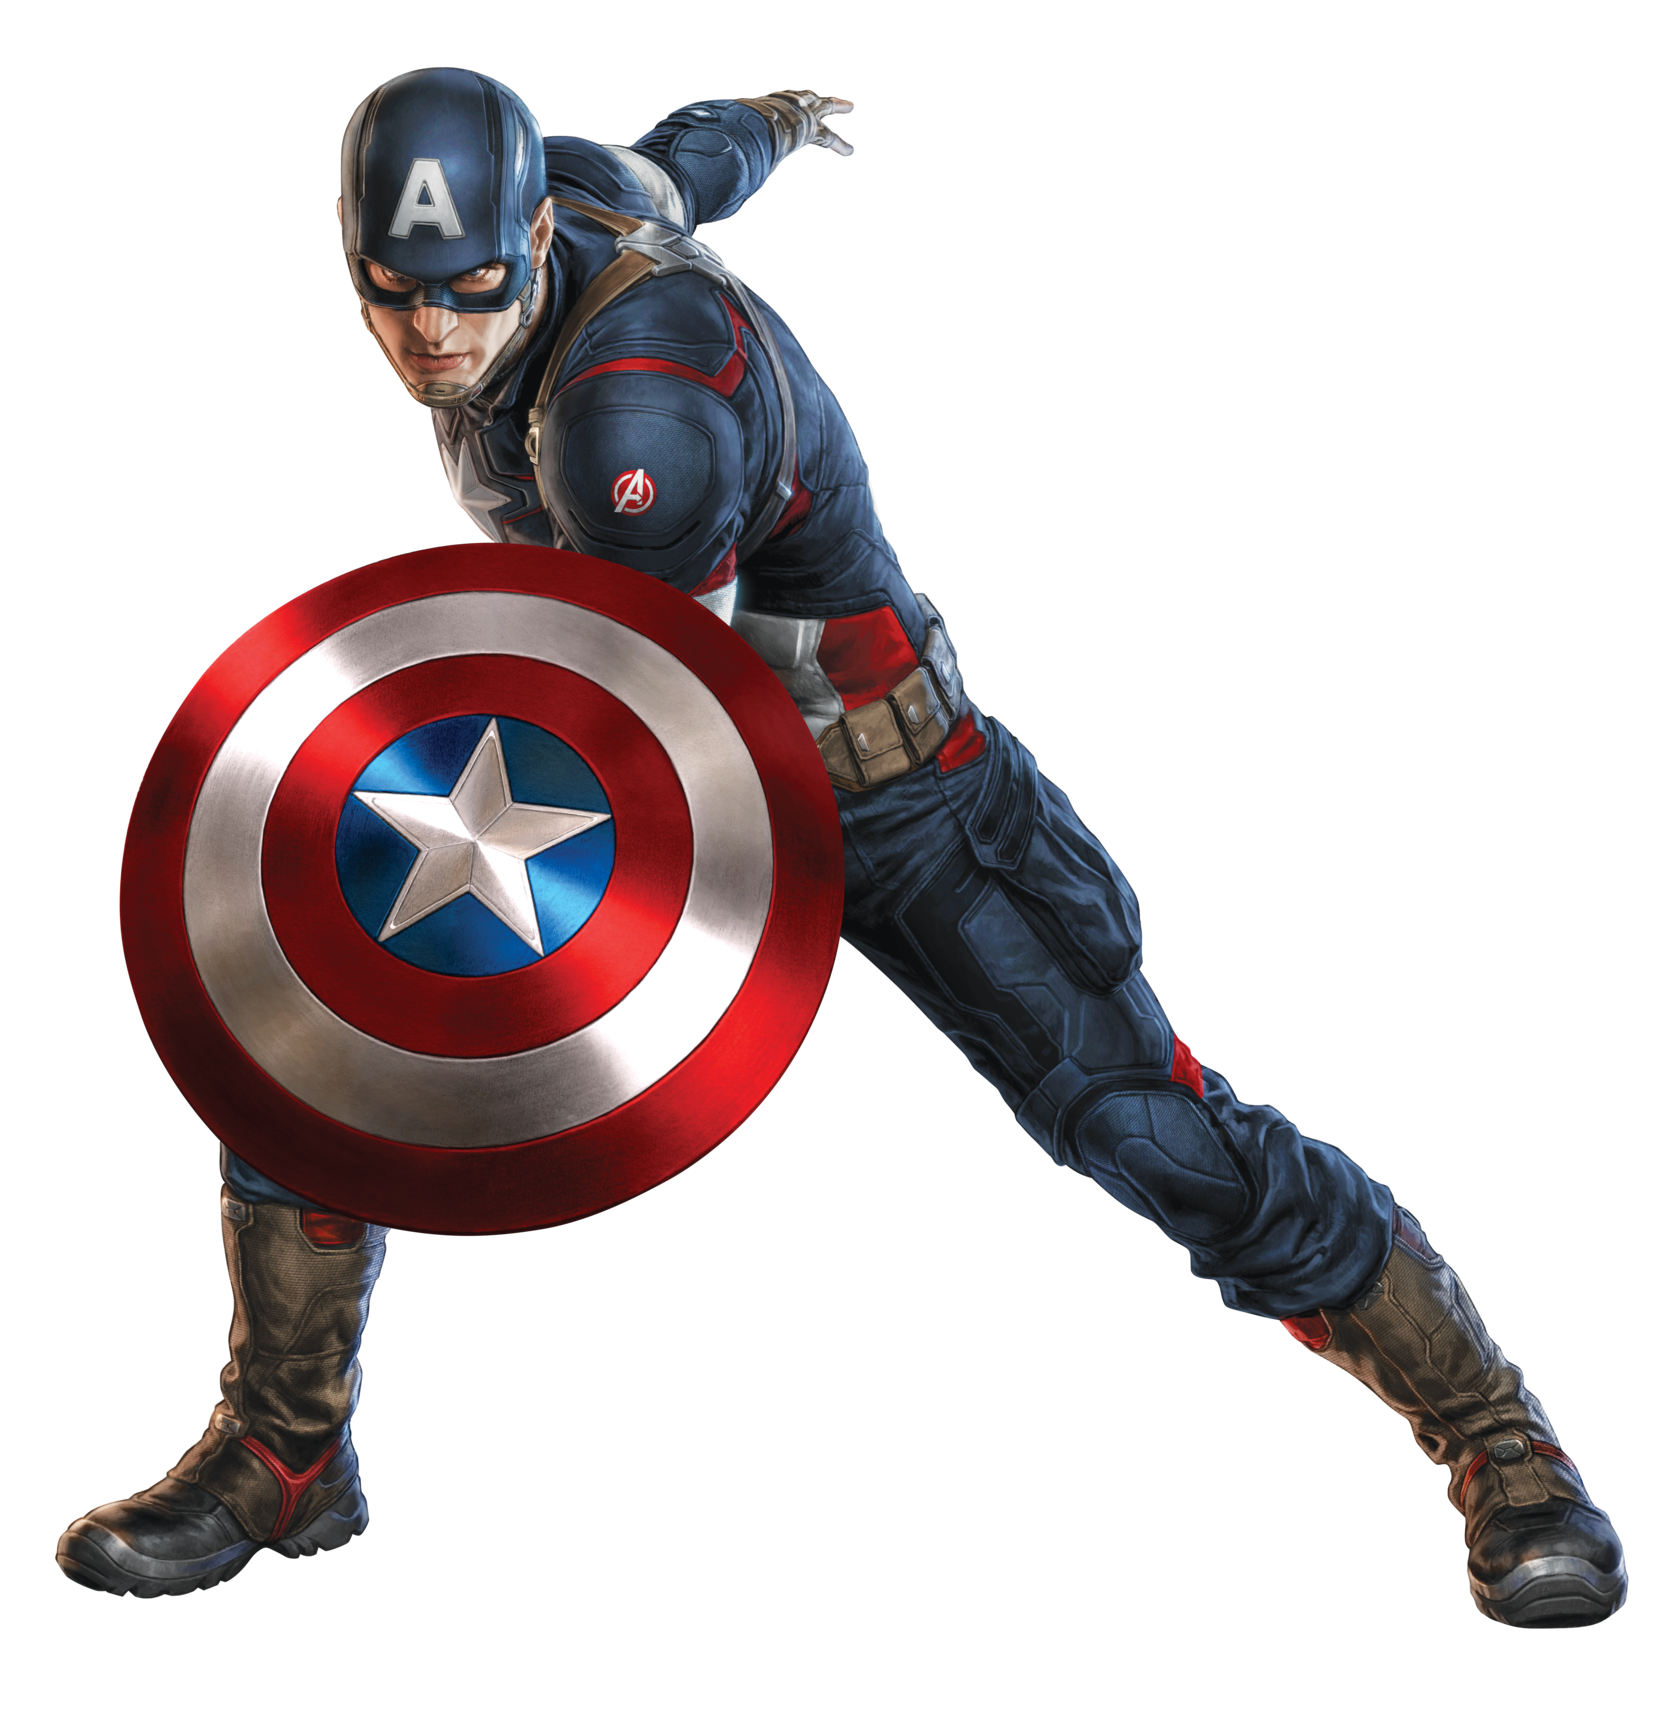 Captain america movie png. Image aou shield guard